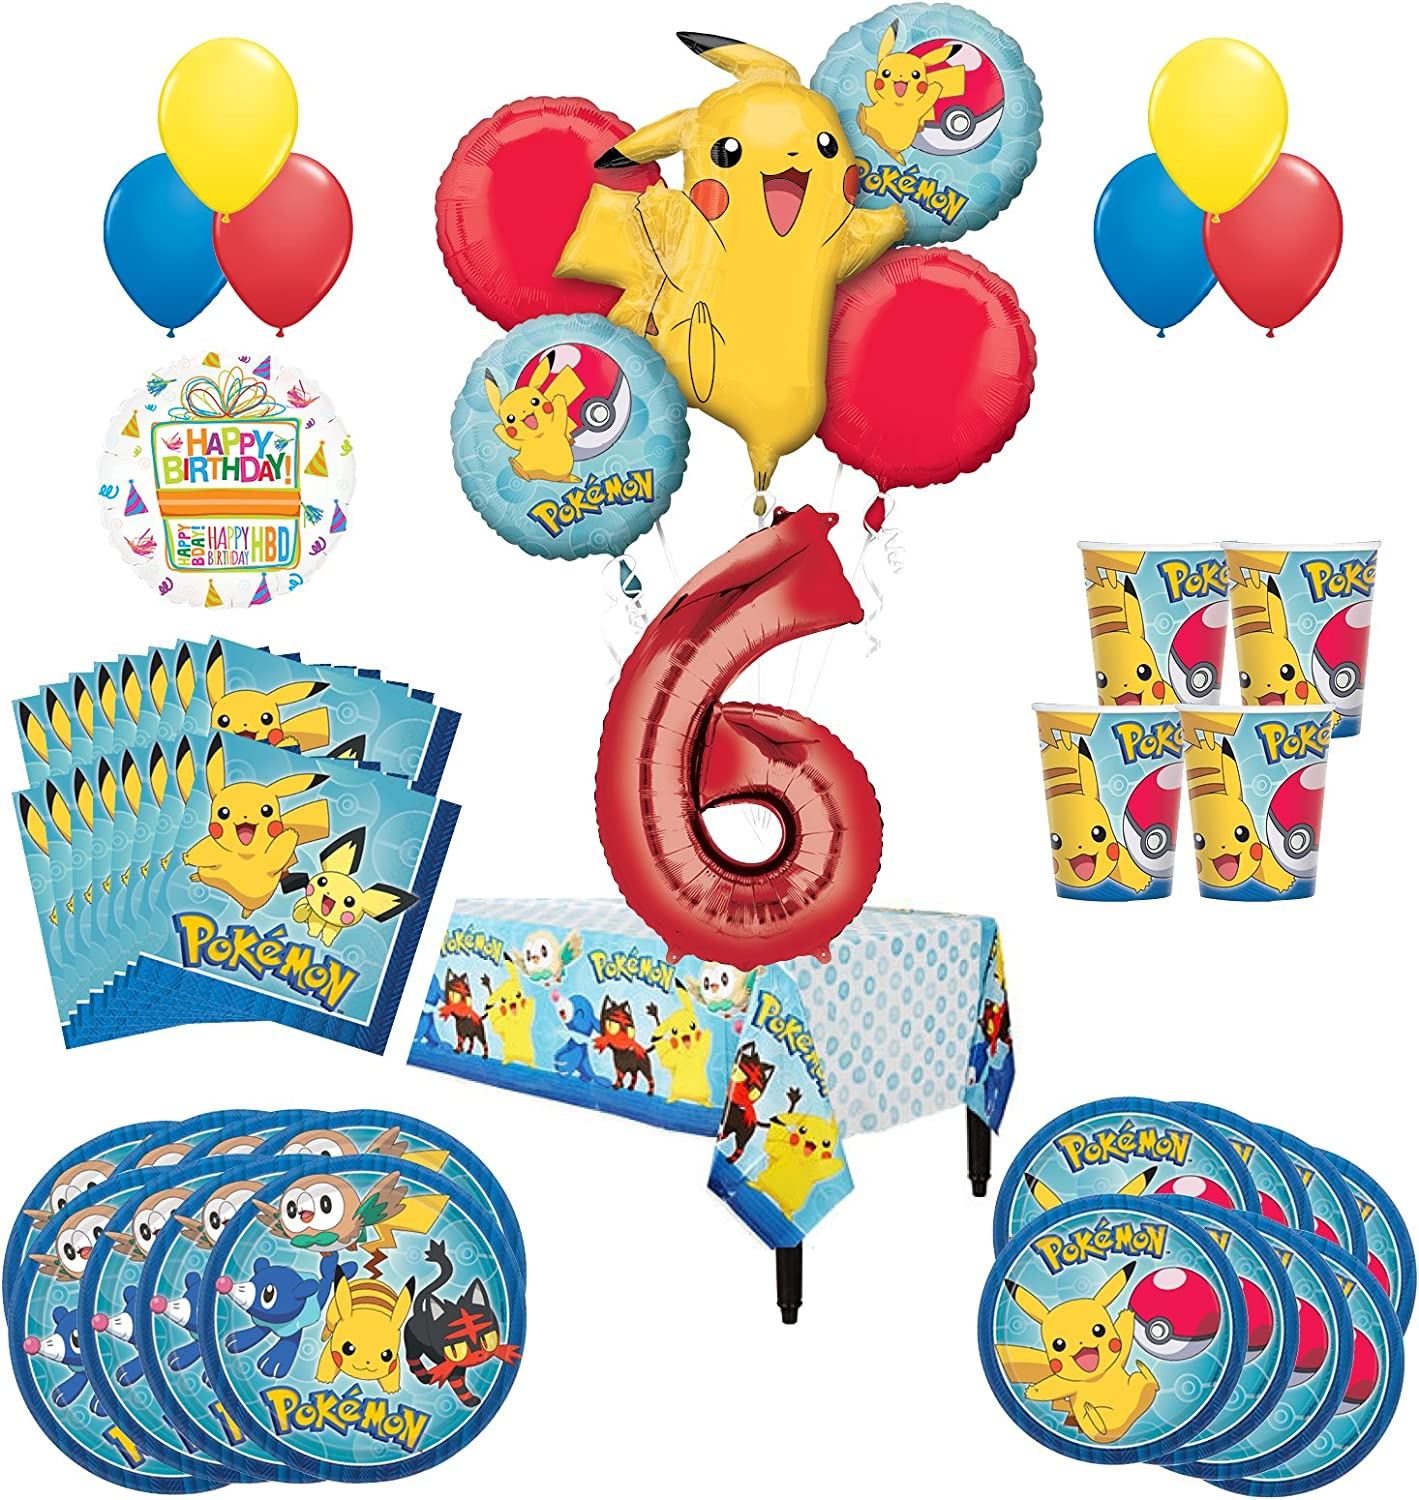 Mayflower Products Pokemon 6th Birthday Party Supplies Balloon Bouquet Decorations